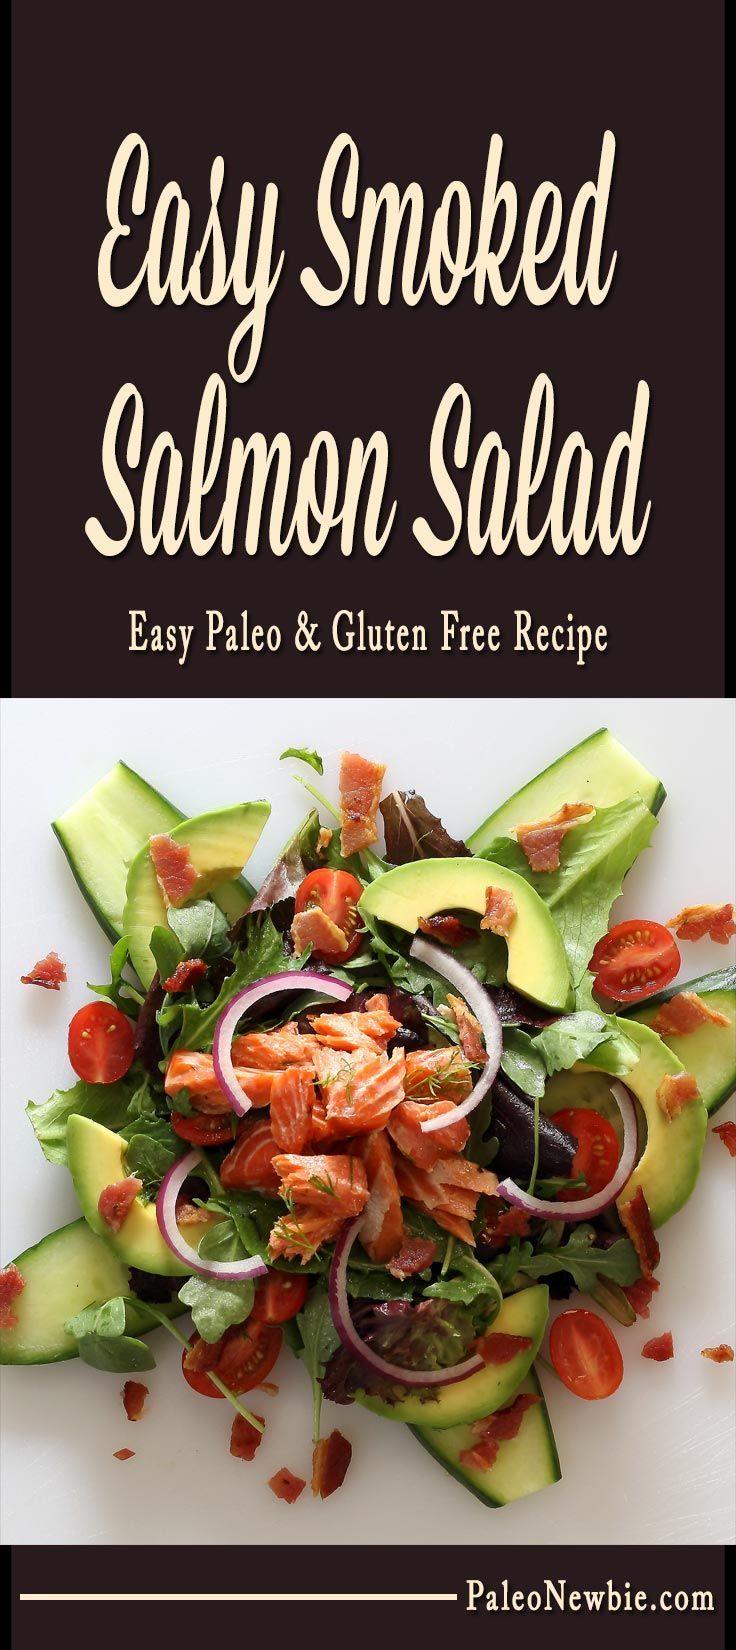 Simple salad and quick lemony dressing you can whip up in minutes with some ready-made smoked salmon. What a light and luscious lunch!